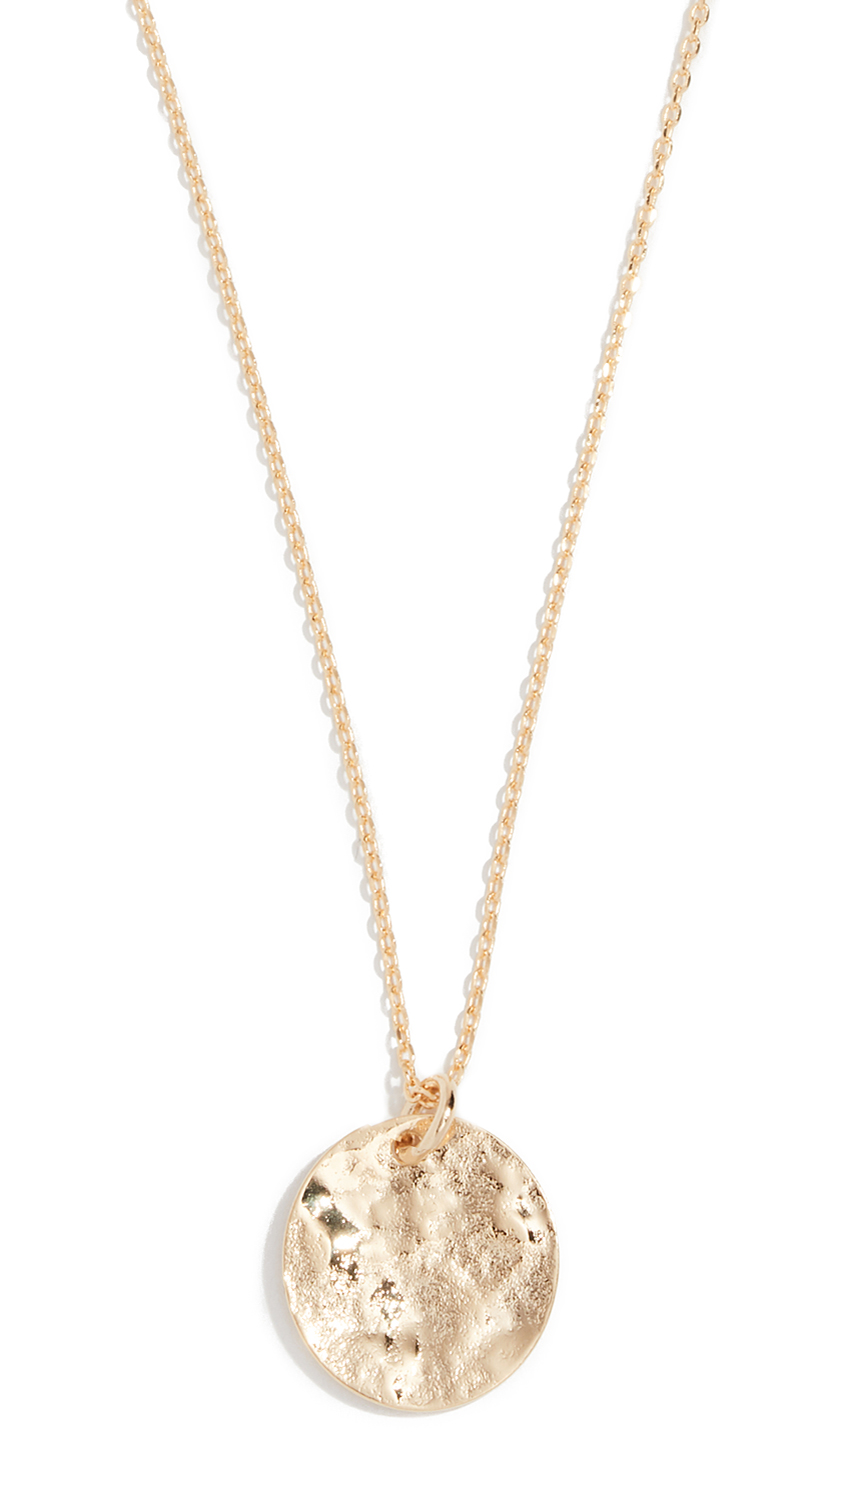 CLOVERPOST Stipple Necklace in Yellow Gold